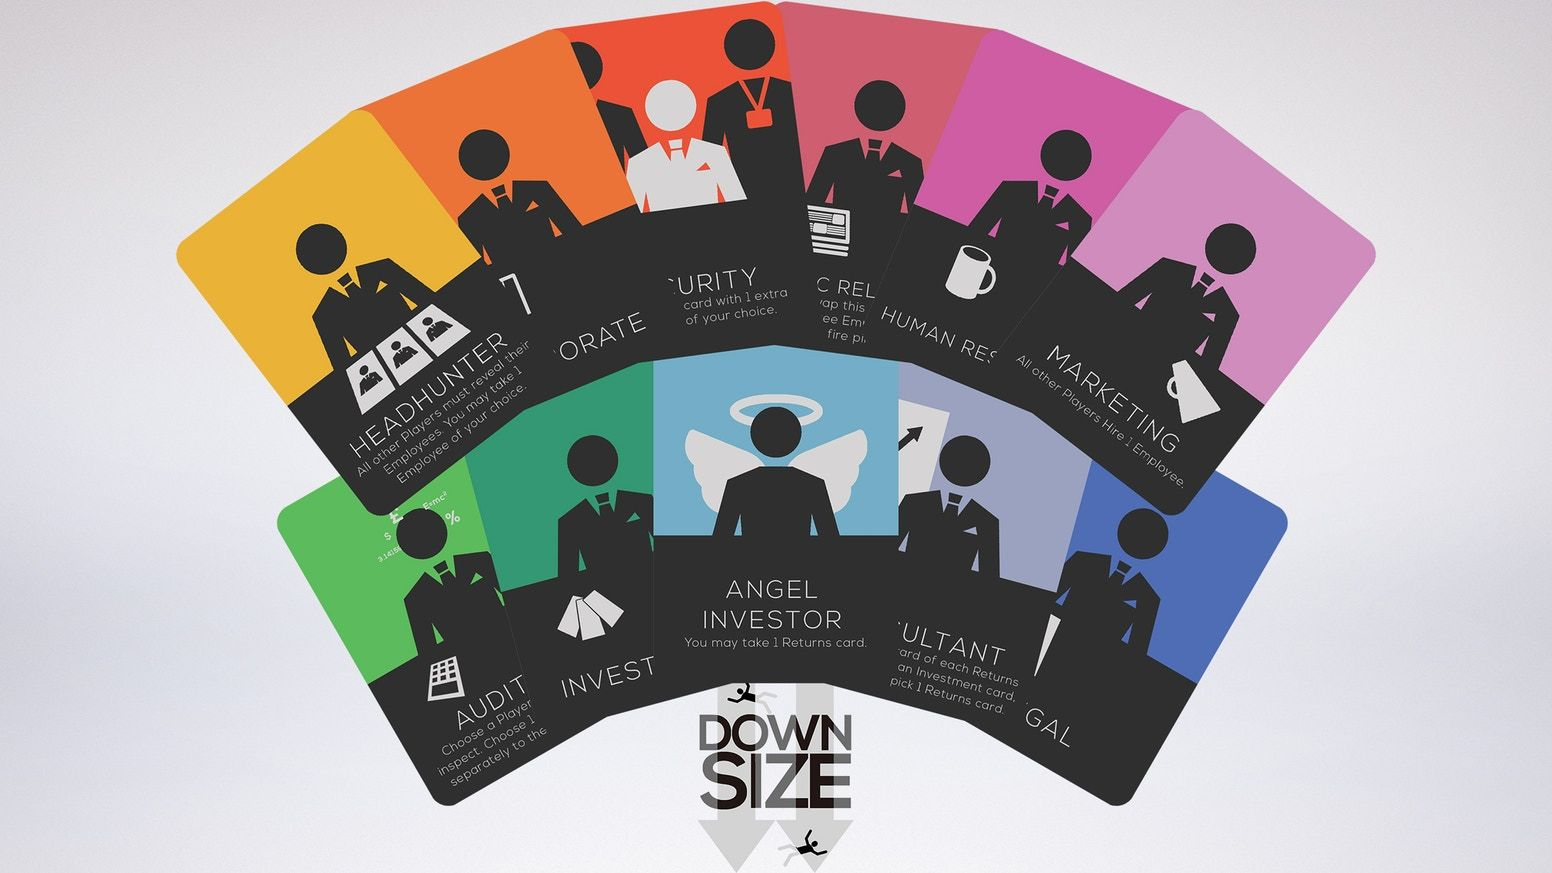 Downsize A Competitive Card Game For 2 6 Players By Lewis Shaw